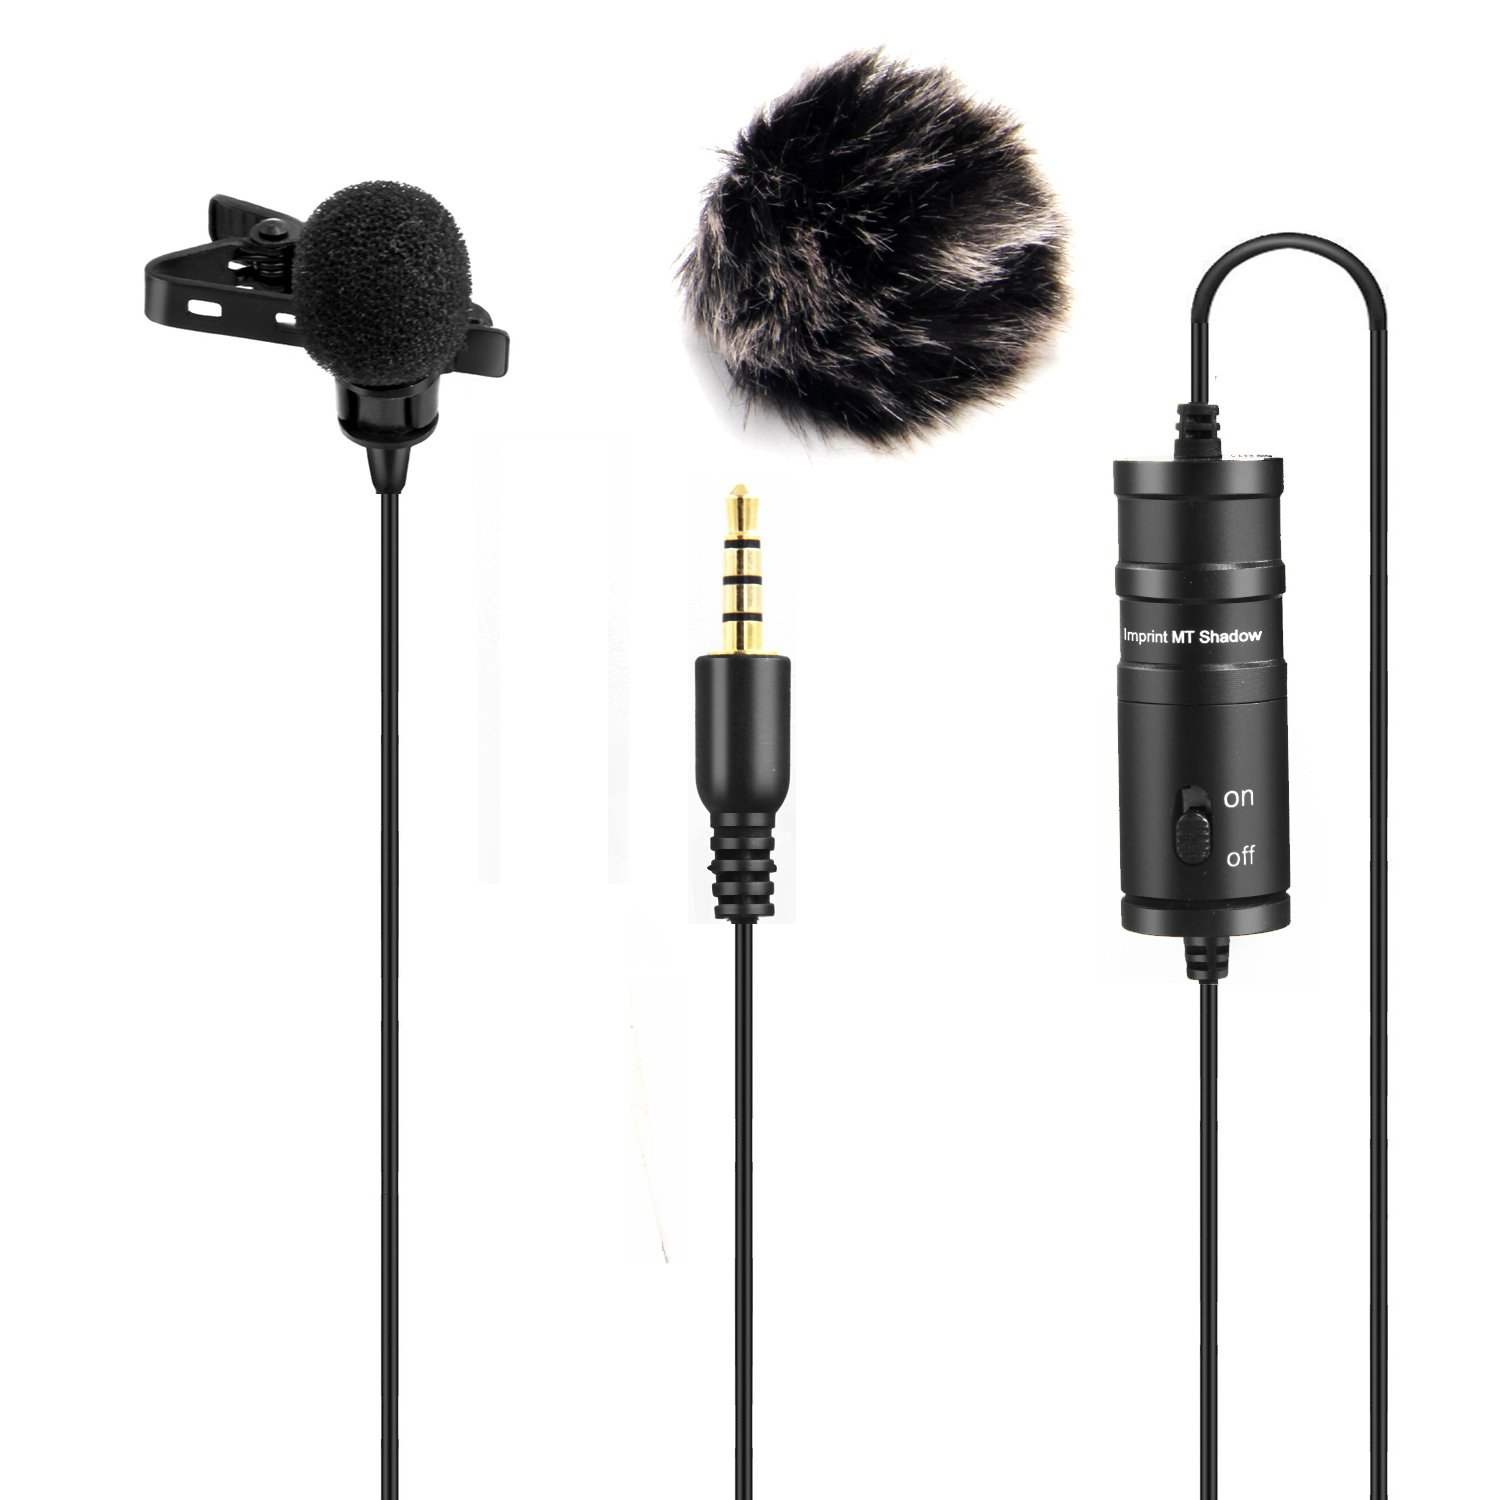 Nicama LVM1 Lavalier Microphone, Hands Free Clip-on Lapel Omnidirectional Condenser Mic with Windscreen Muff for Mirrorless Camera Sony DSLR iPhone Android Samsung PC Laptop MacBook (236in Cable)